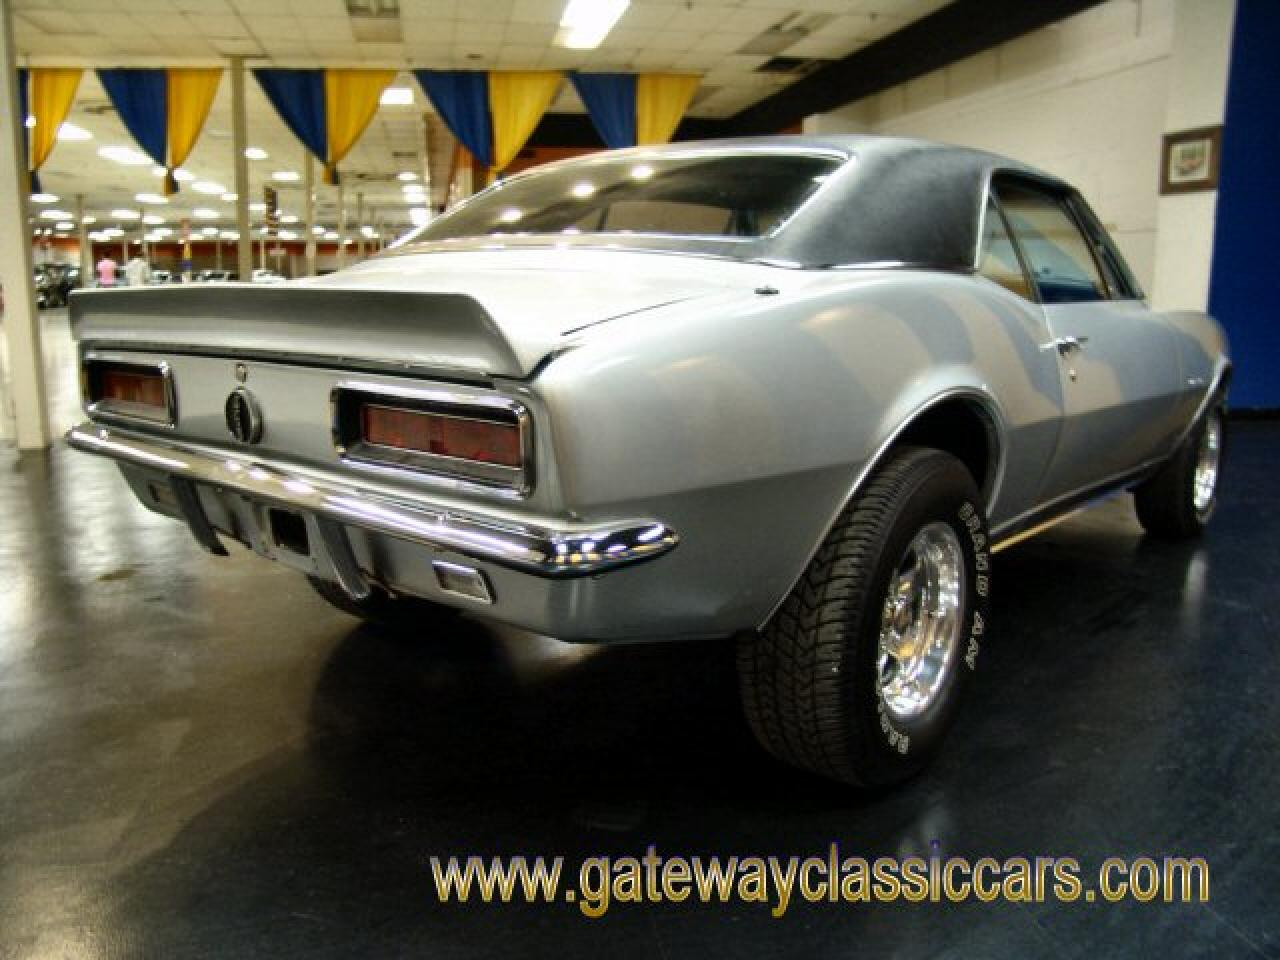 1967 Chevrolet Camaro Rs Gateway Classic Cars 4513 Stl